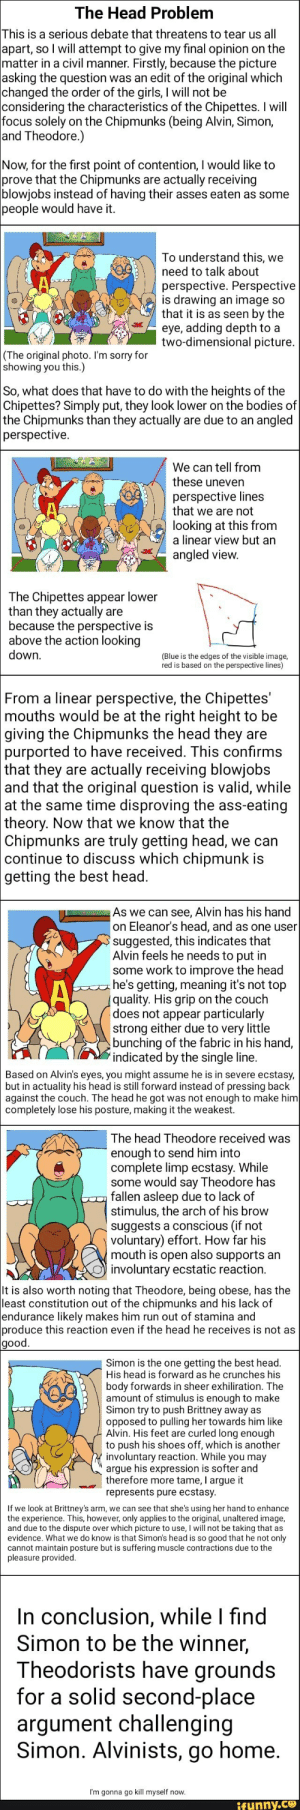 Best head explained: The Head Problem  This is a serious debate that threatens to tear us all  apart, so I will attempt to give my final opinion on the  matter in a civil manner. Firstly, because the picture  asking the question was an edit of the original which  changed the order of the girls, I will not be  considering the characteristics of the Chipettes. I will  focus solely on the Chipmunks (being Alvin, Simon,  and Theodore.)  Now, for the first point of contention, I would like to  prove that the Chipmunks  blowjobs instead of having their asses eaten as some  people would have it  actually receiving  are  To understand this, we  need to talk about  perspective. Perspective  is drawing an image so  that it is as seen by the  eye, adding depth to a  two-dimensional picture.  (The original photo. I'm sorry for  showing you this.)  So, what does that have to do with the heights of the  Chipettes? Simply put, they look lower on the bodies of  the Chipmunks than they actually are due to an angled  perspective.  We can tell from  these uneven  perspective lines  that we are not  looking at this from  a linear view but an  angled view.  The Chipettes appear lower  than they actually are  because the perspective is  above the action looking  down.  (Blue is the edges of the visible image,  red is based on the perspective lines)  |From a linear perspective, the Chipettes'  mouths would be at the right height to be  |giving the Chipmunks the head they are  purported to have received. This confirms  | that they are actually receiving blowjobs  |and that the original question is valid, while  at the same time disproving the ass-eating  theory. Now that we know that the  Chipmunks are  continue to discuss which chipmunk is  getting the best head.  truly getting head, we can  As we can see, Alvin has his hand  on Eleanor's head, and as one user  suggested, this indicates that  Alvin feels he needs to put in  some work to improve the head  he's getting, meaning it's not top